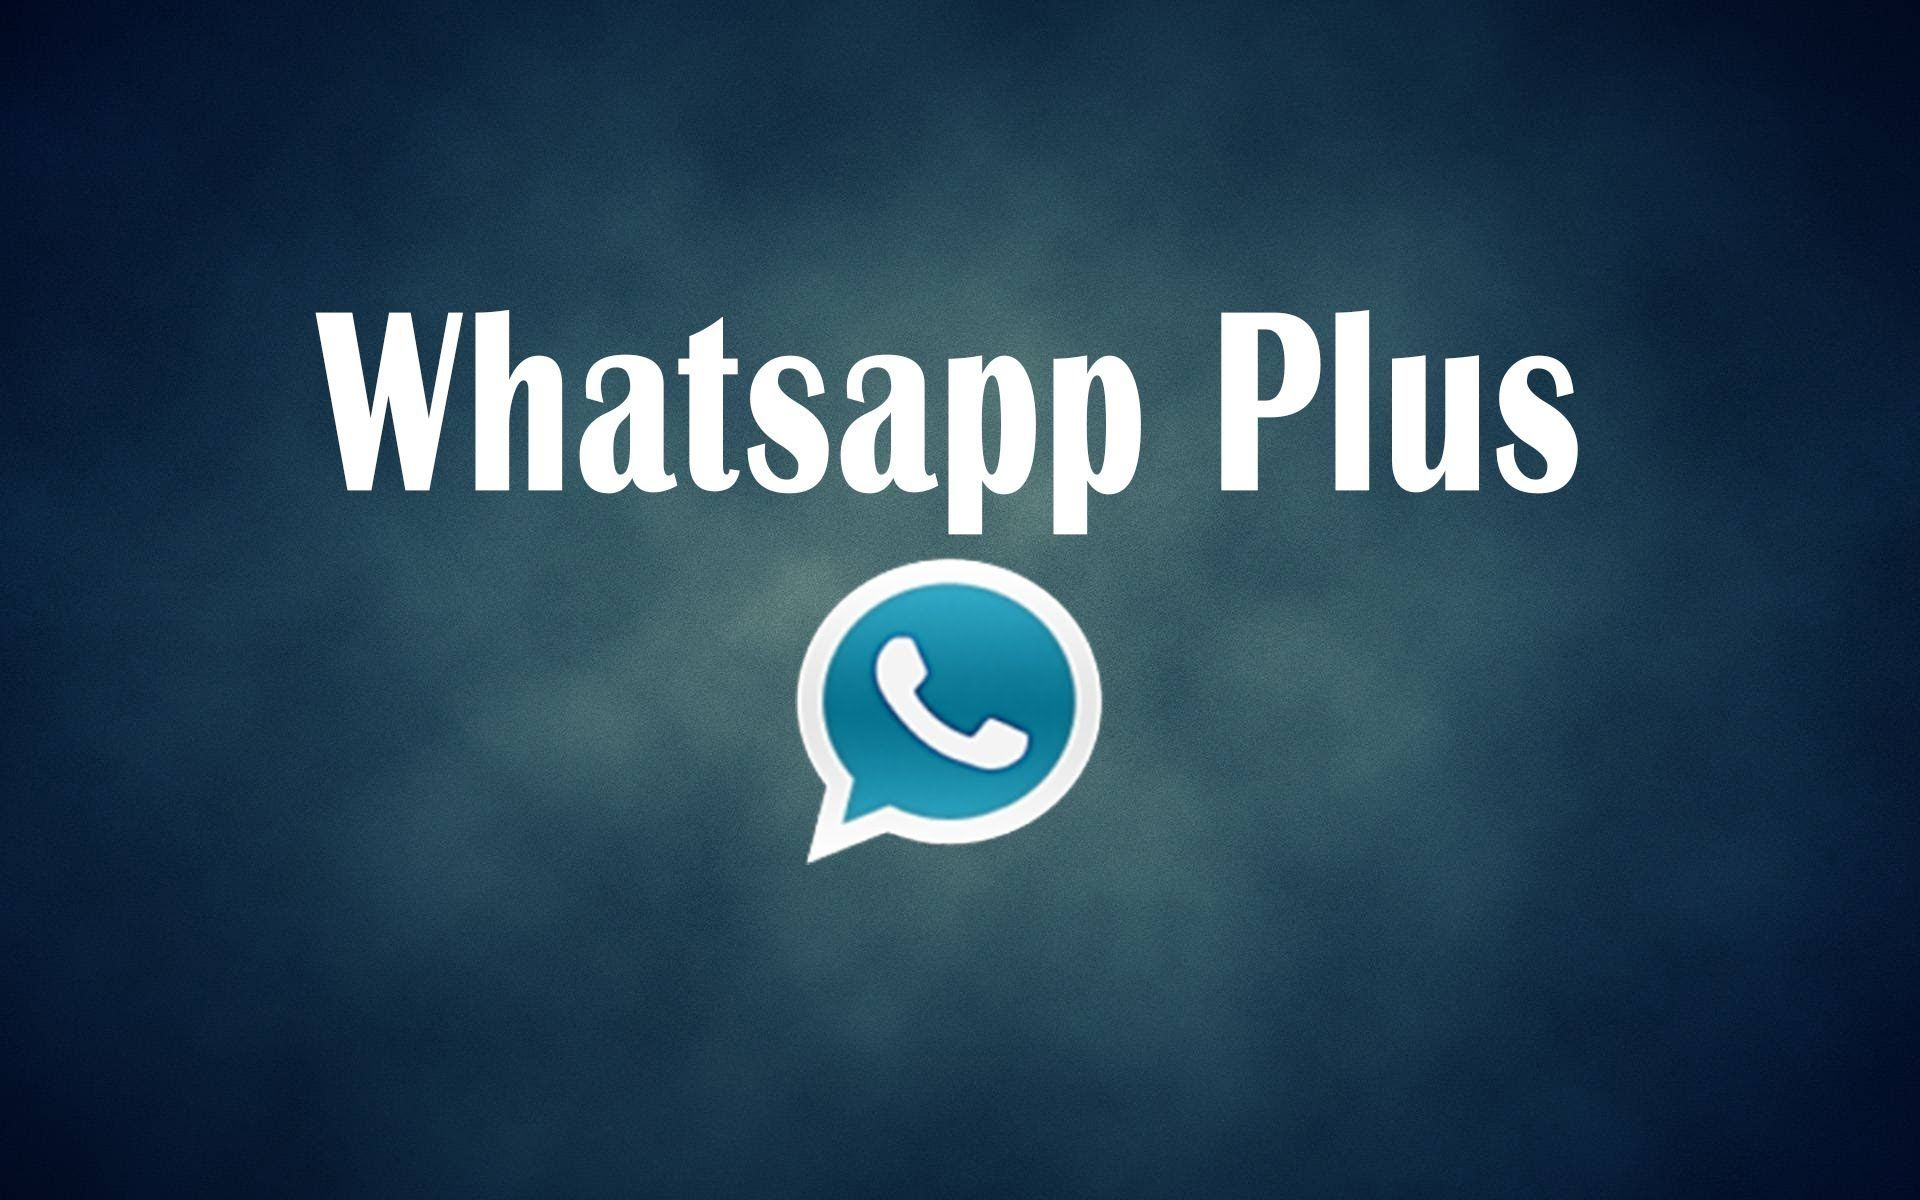 WhatsApp Plus 6 87 APK Free Download And Install Latest